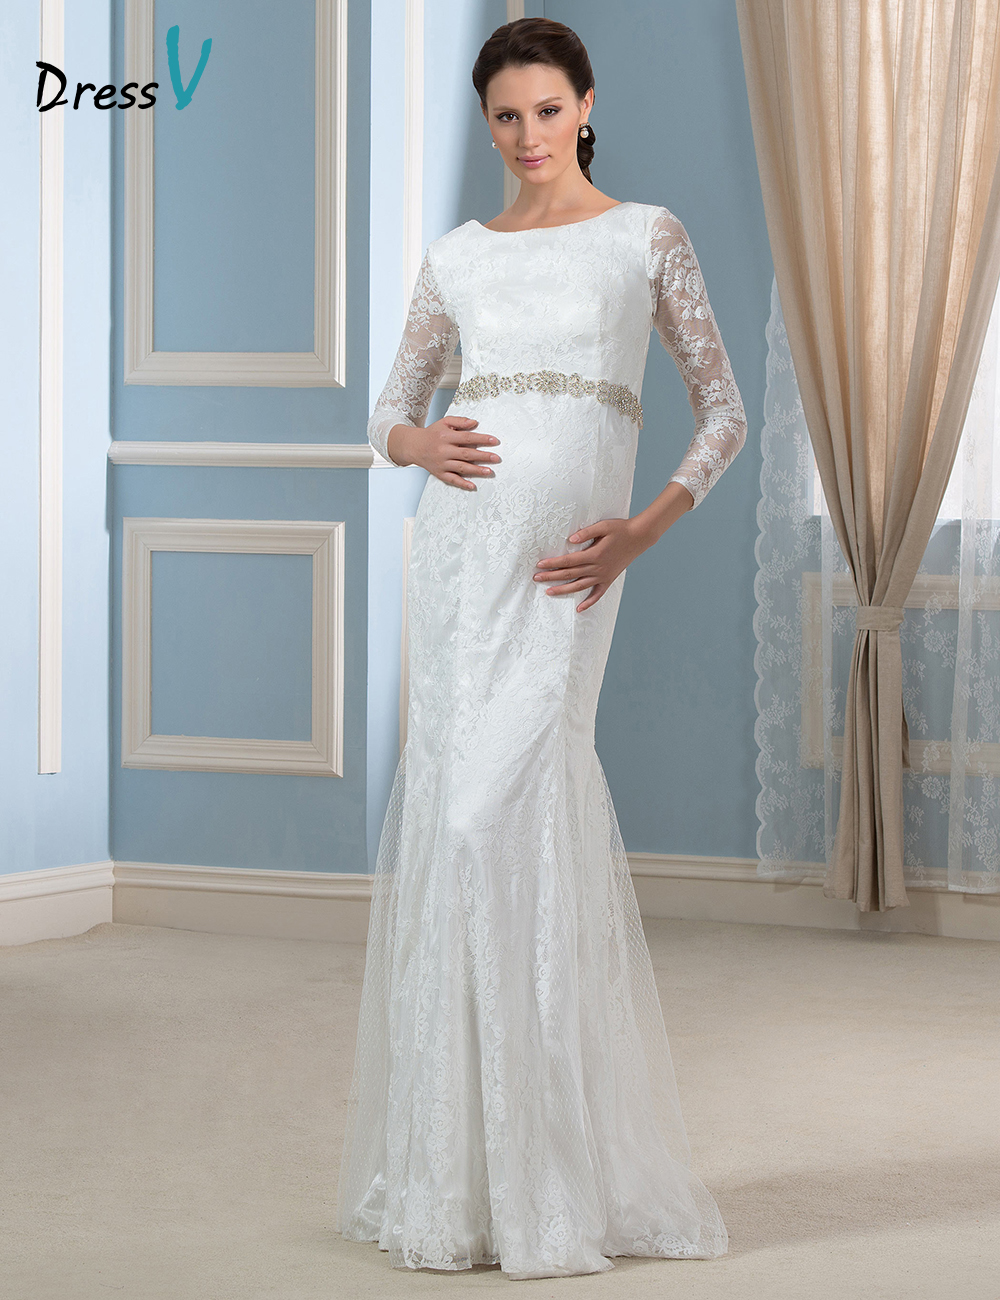 pregnancy wedding dresses australia short maternity wedding dresses Wedding Dress Australia